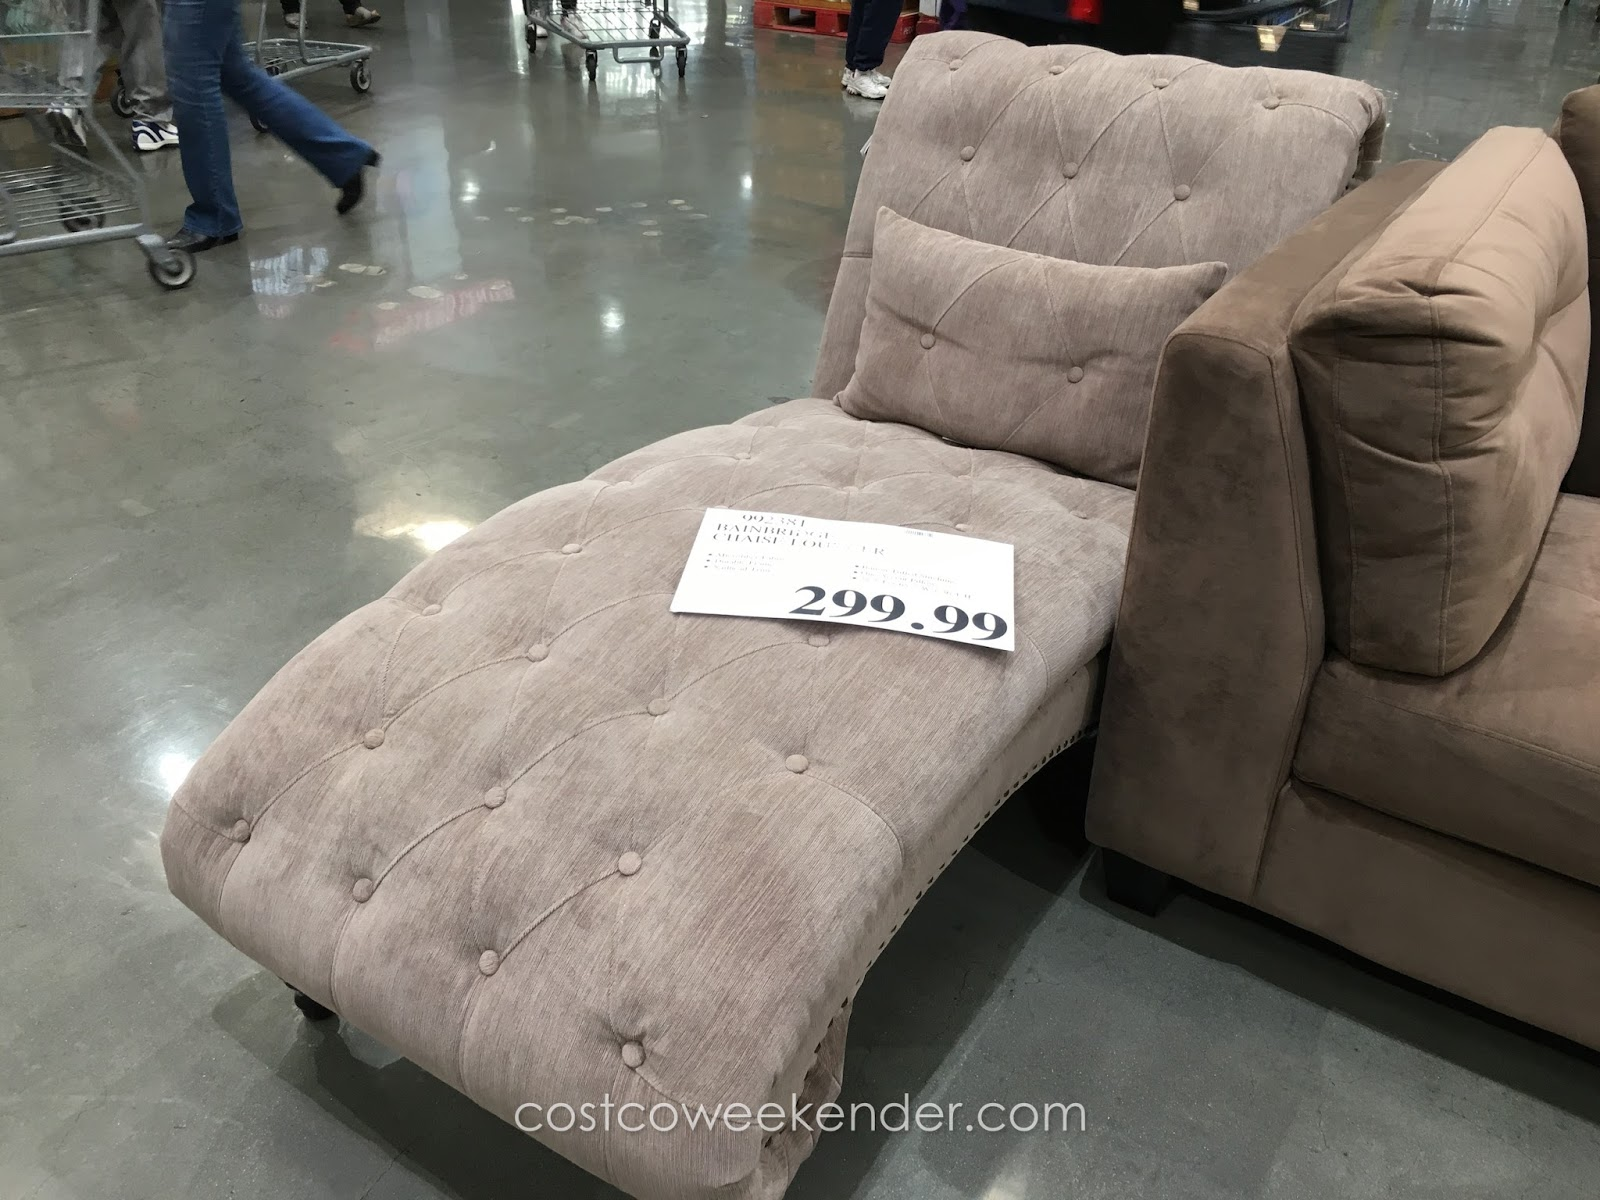 Bainbridge chaise lounger chair costco weekender for Chaise lounge costco